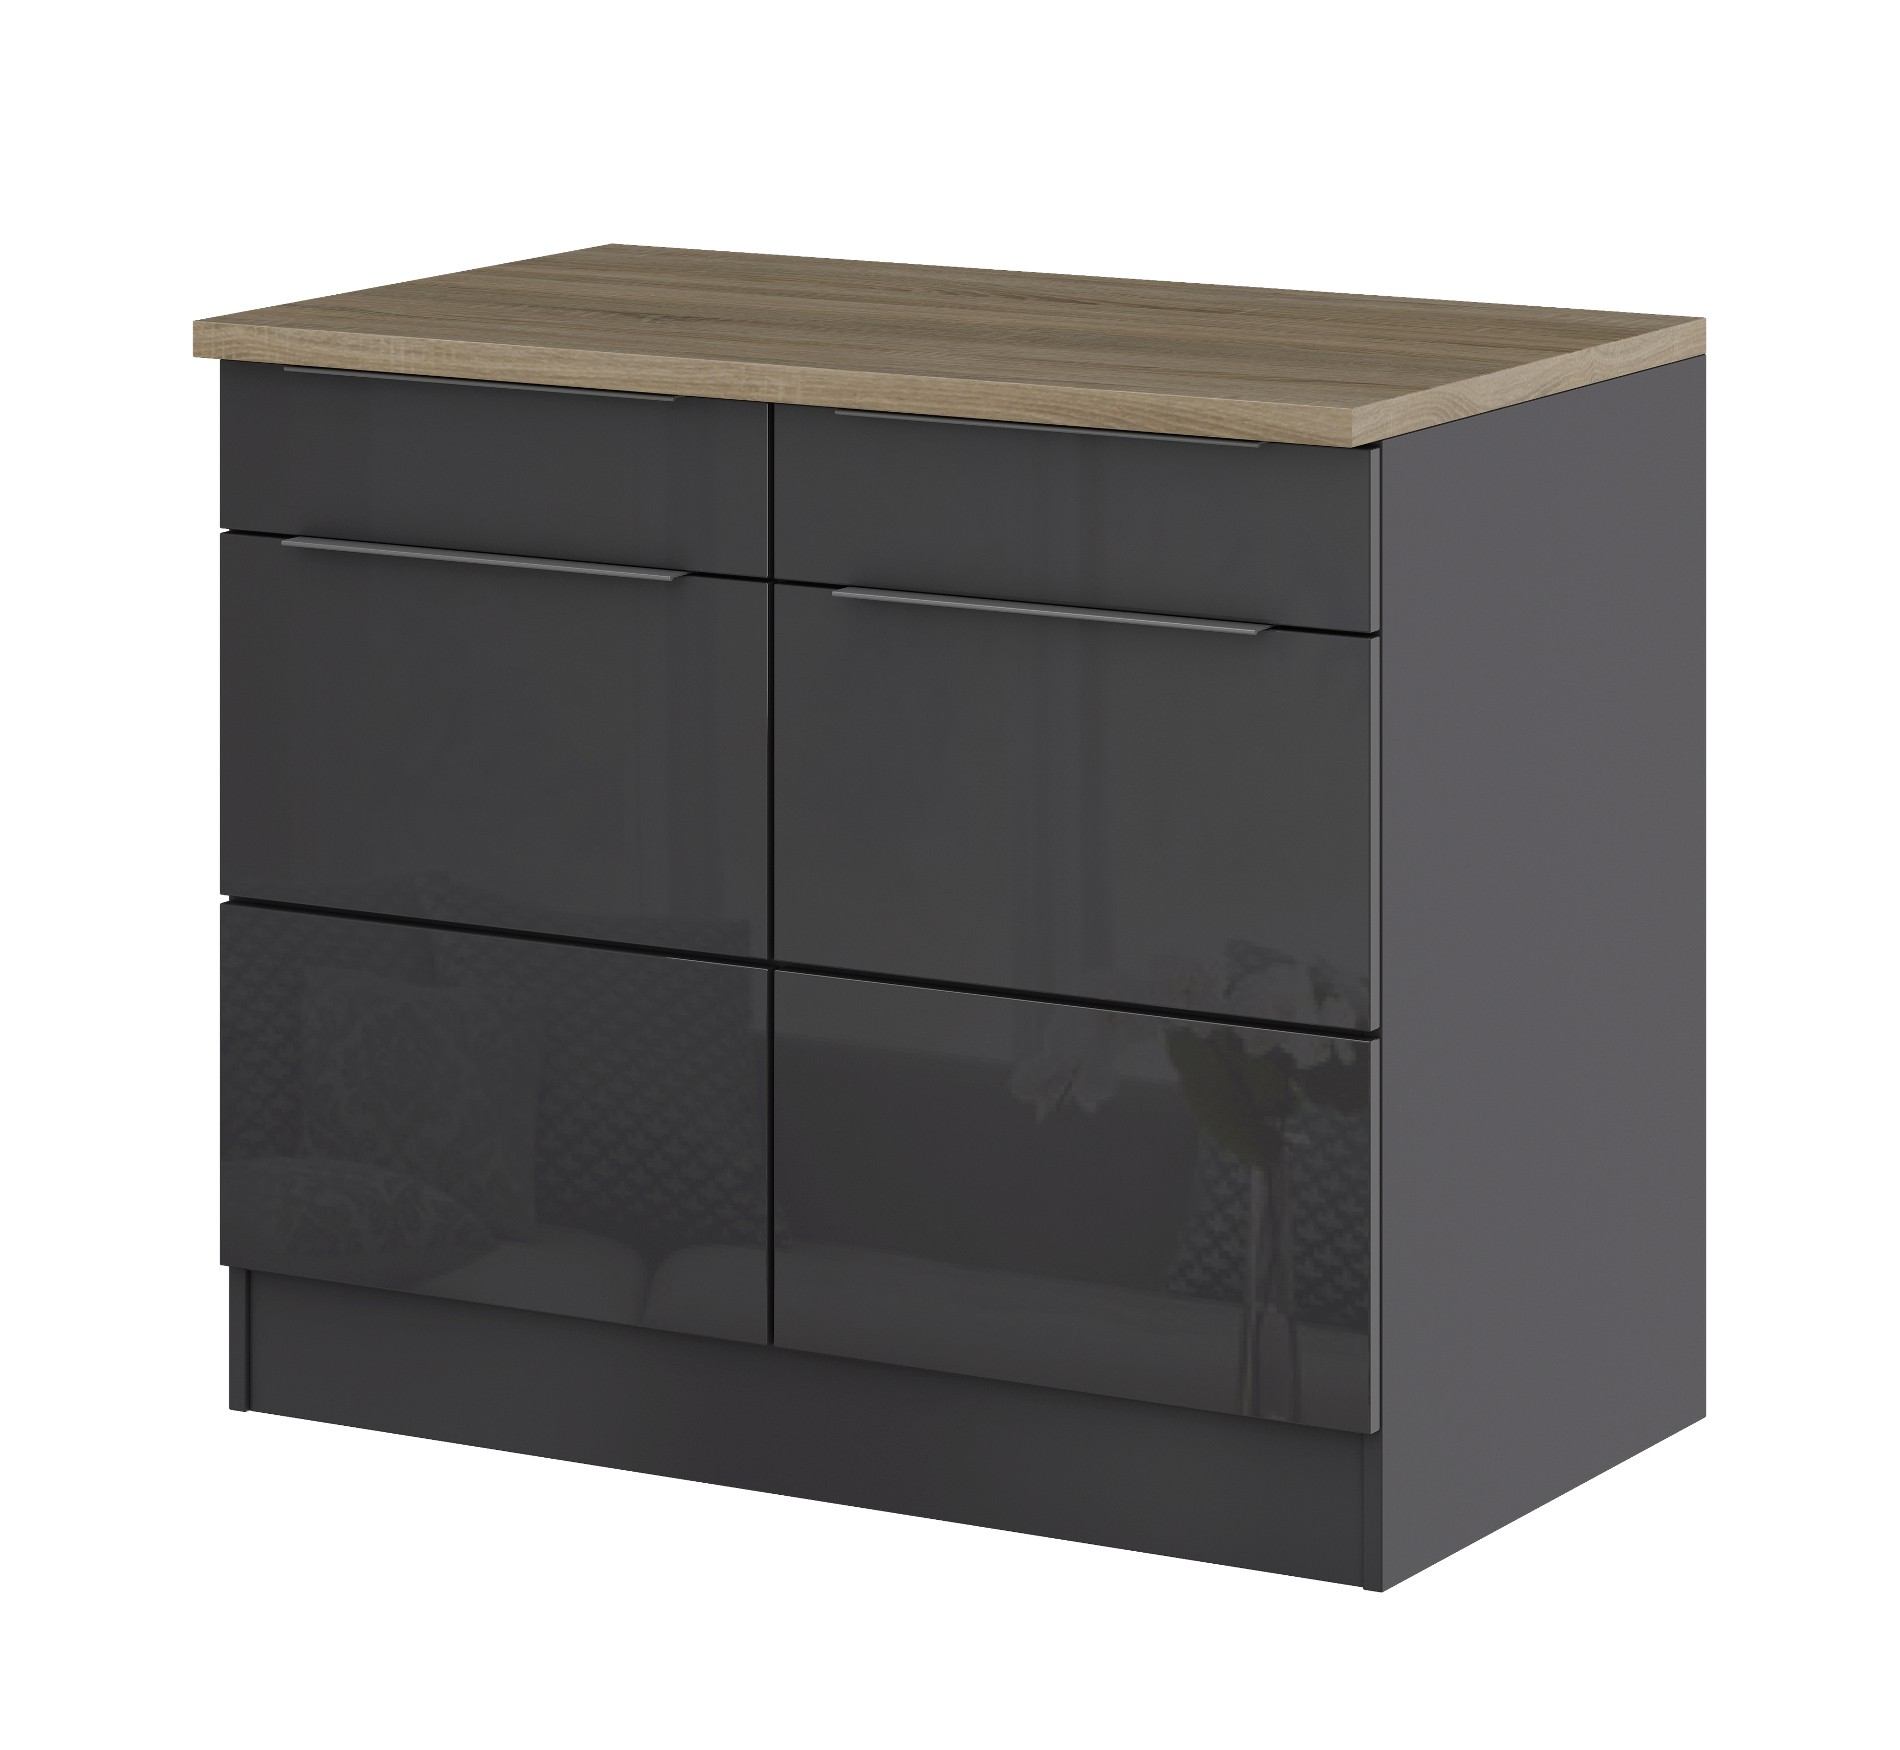 k chen unterschrank hamburg 2 t rig 100 cm breit hochglanz grau graphit k che hamburg. Black Bedroom Furniture Sets. Home Design Ideas